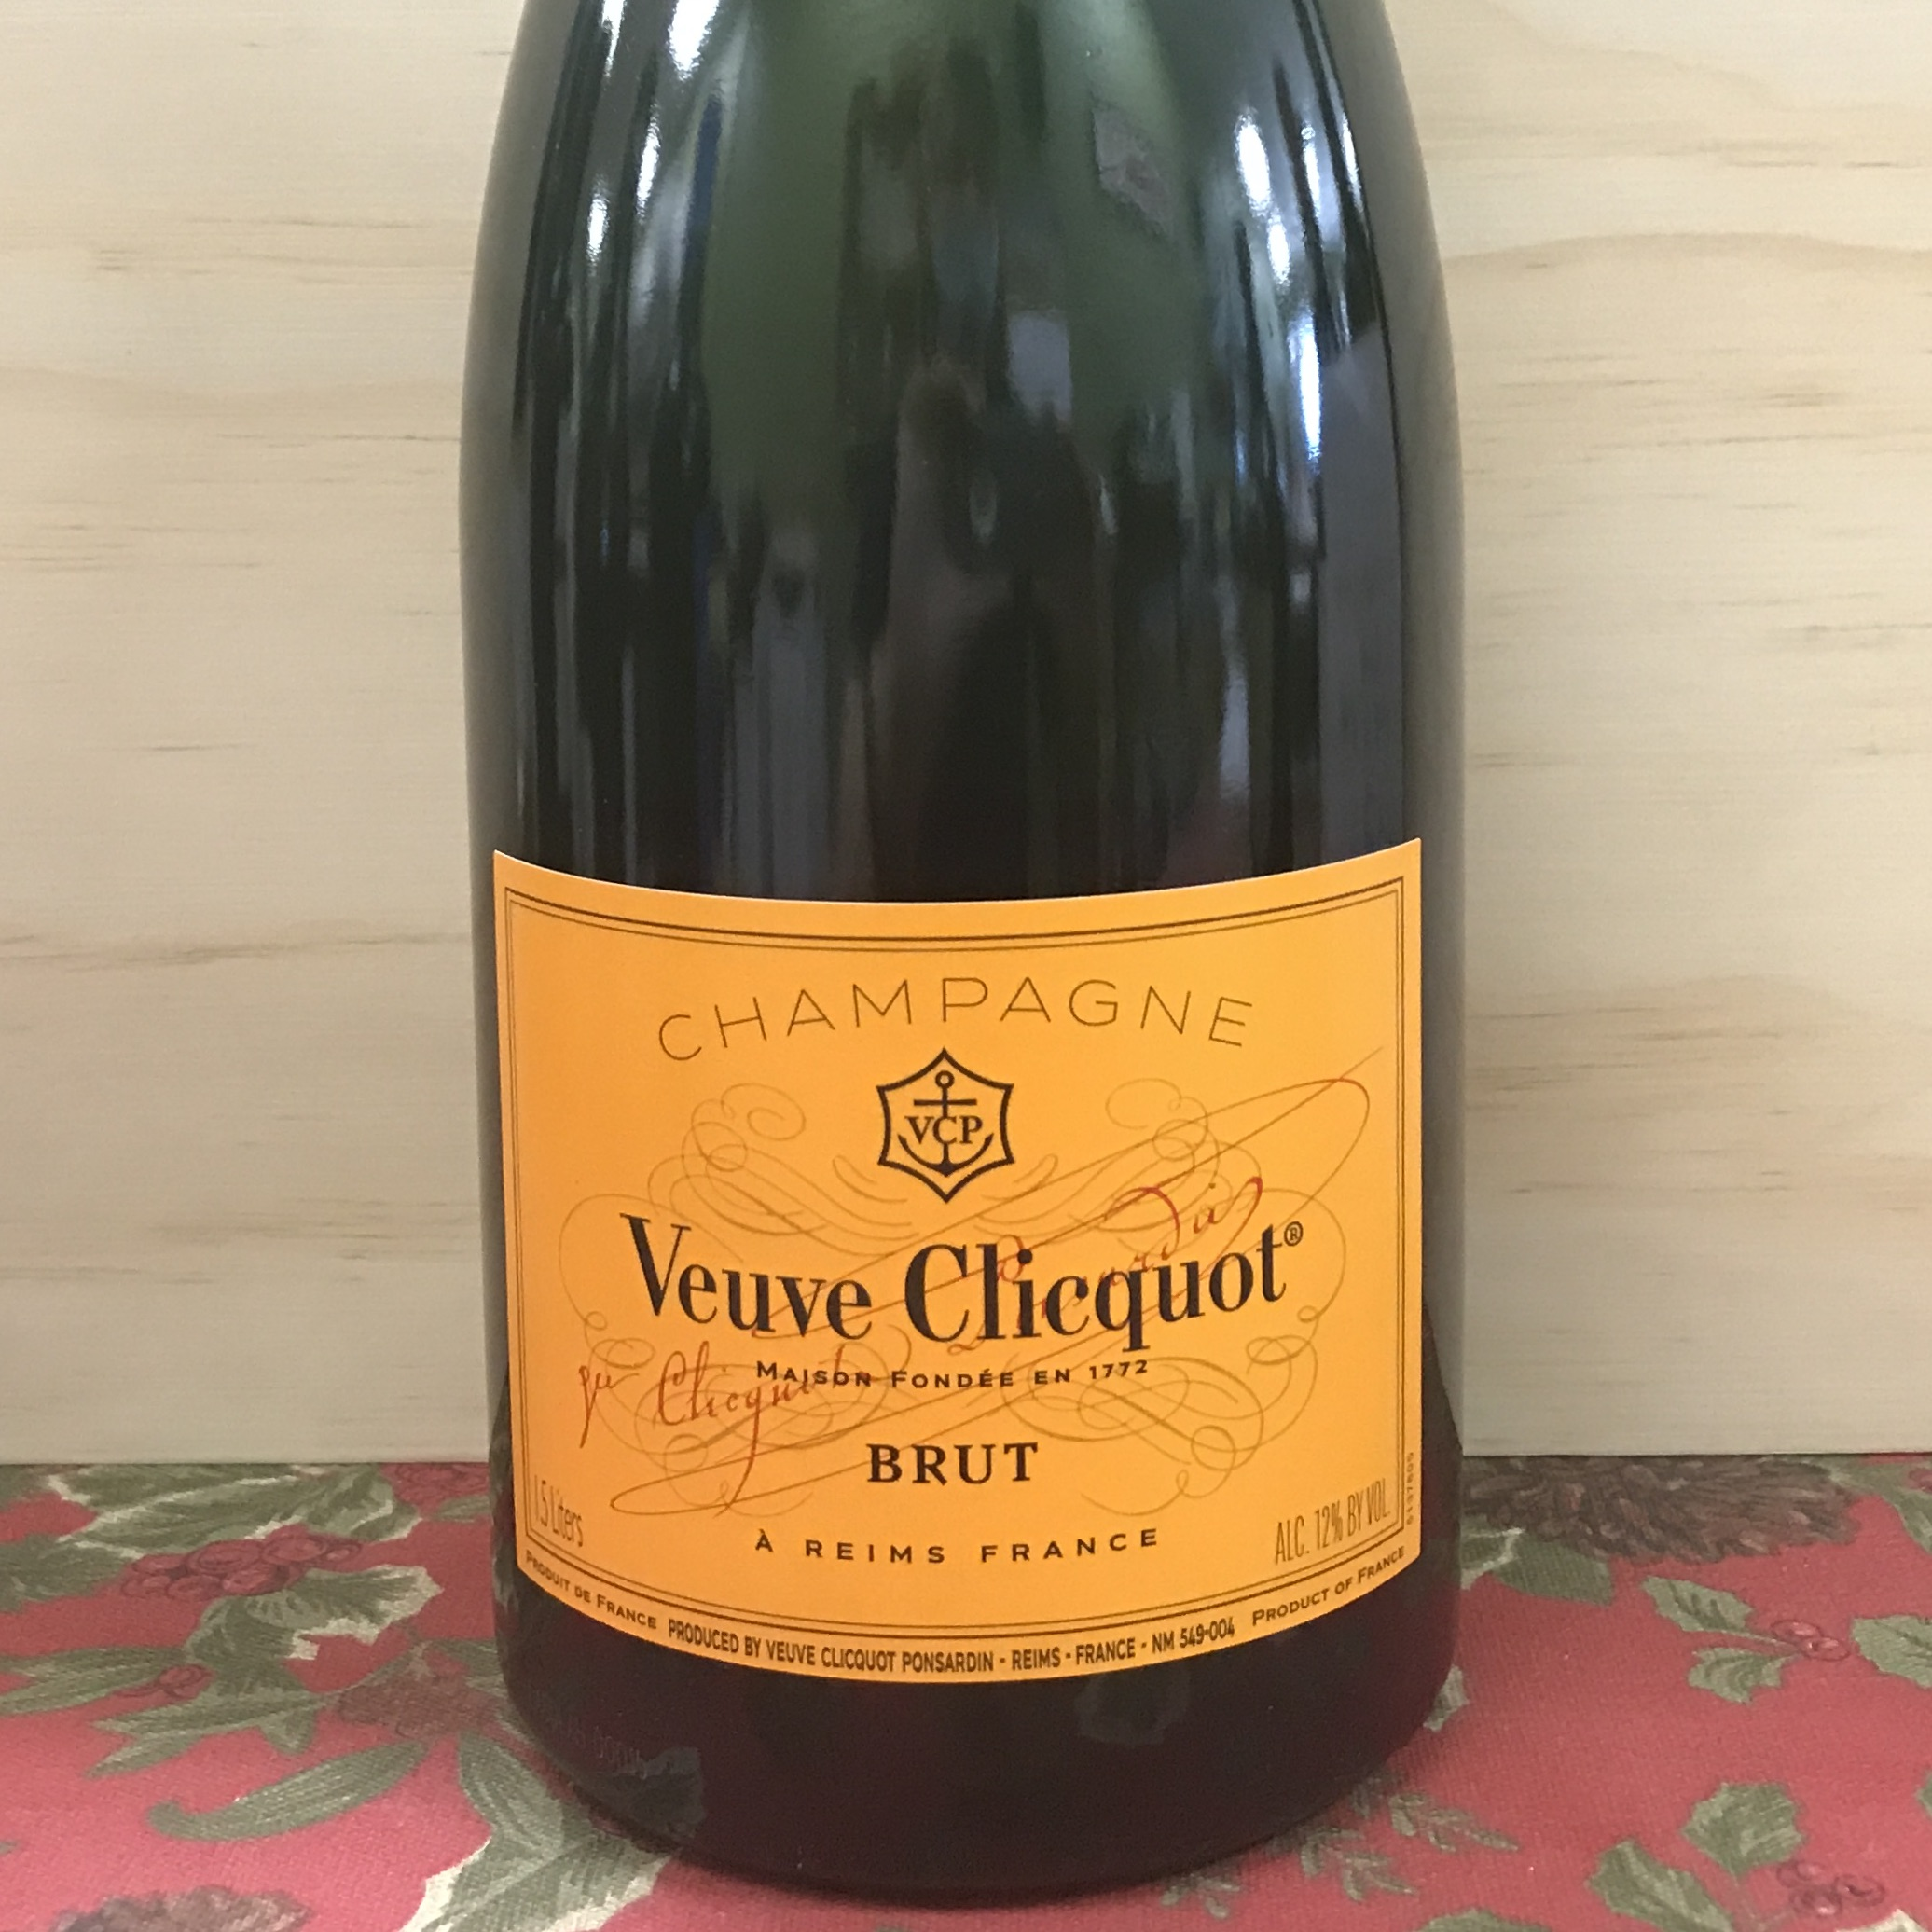 Veuve Clicquot Yellow Label Brut Champagne 1.5 Liter